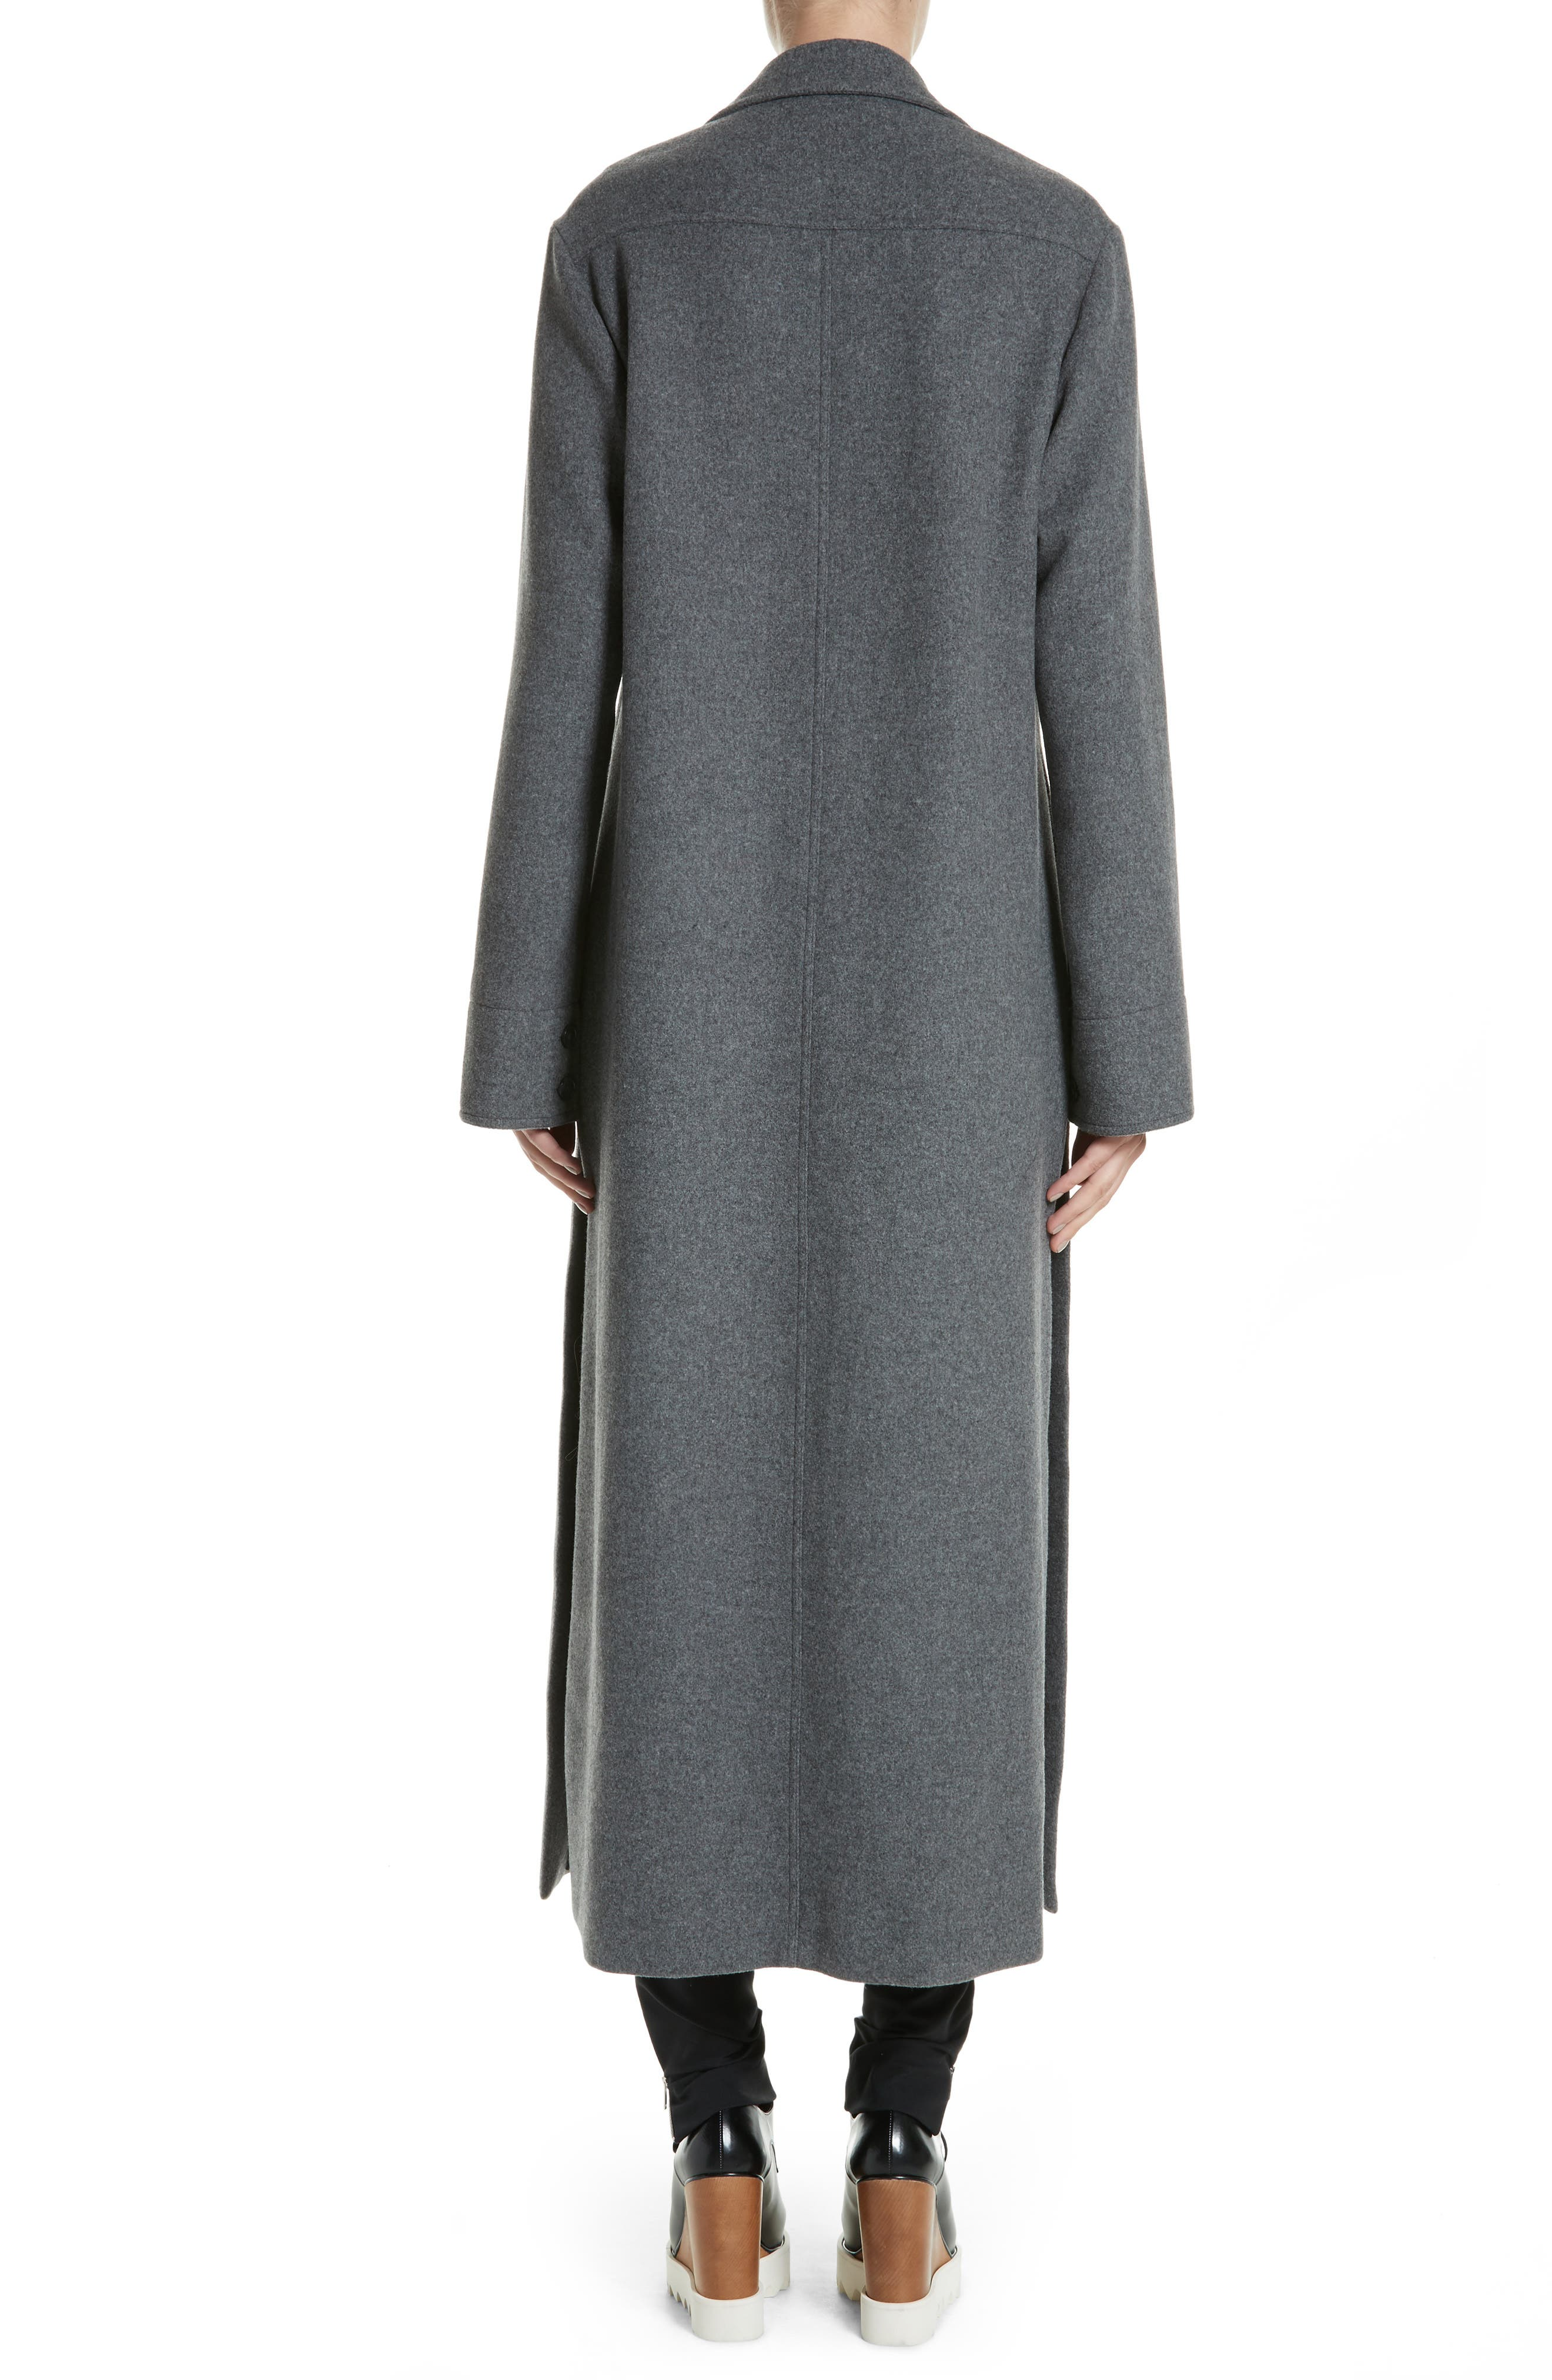 Edwina Long Double Breasted Wool Blend Coat,                             Alternate thumbnail 2, color,                             Graphite